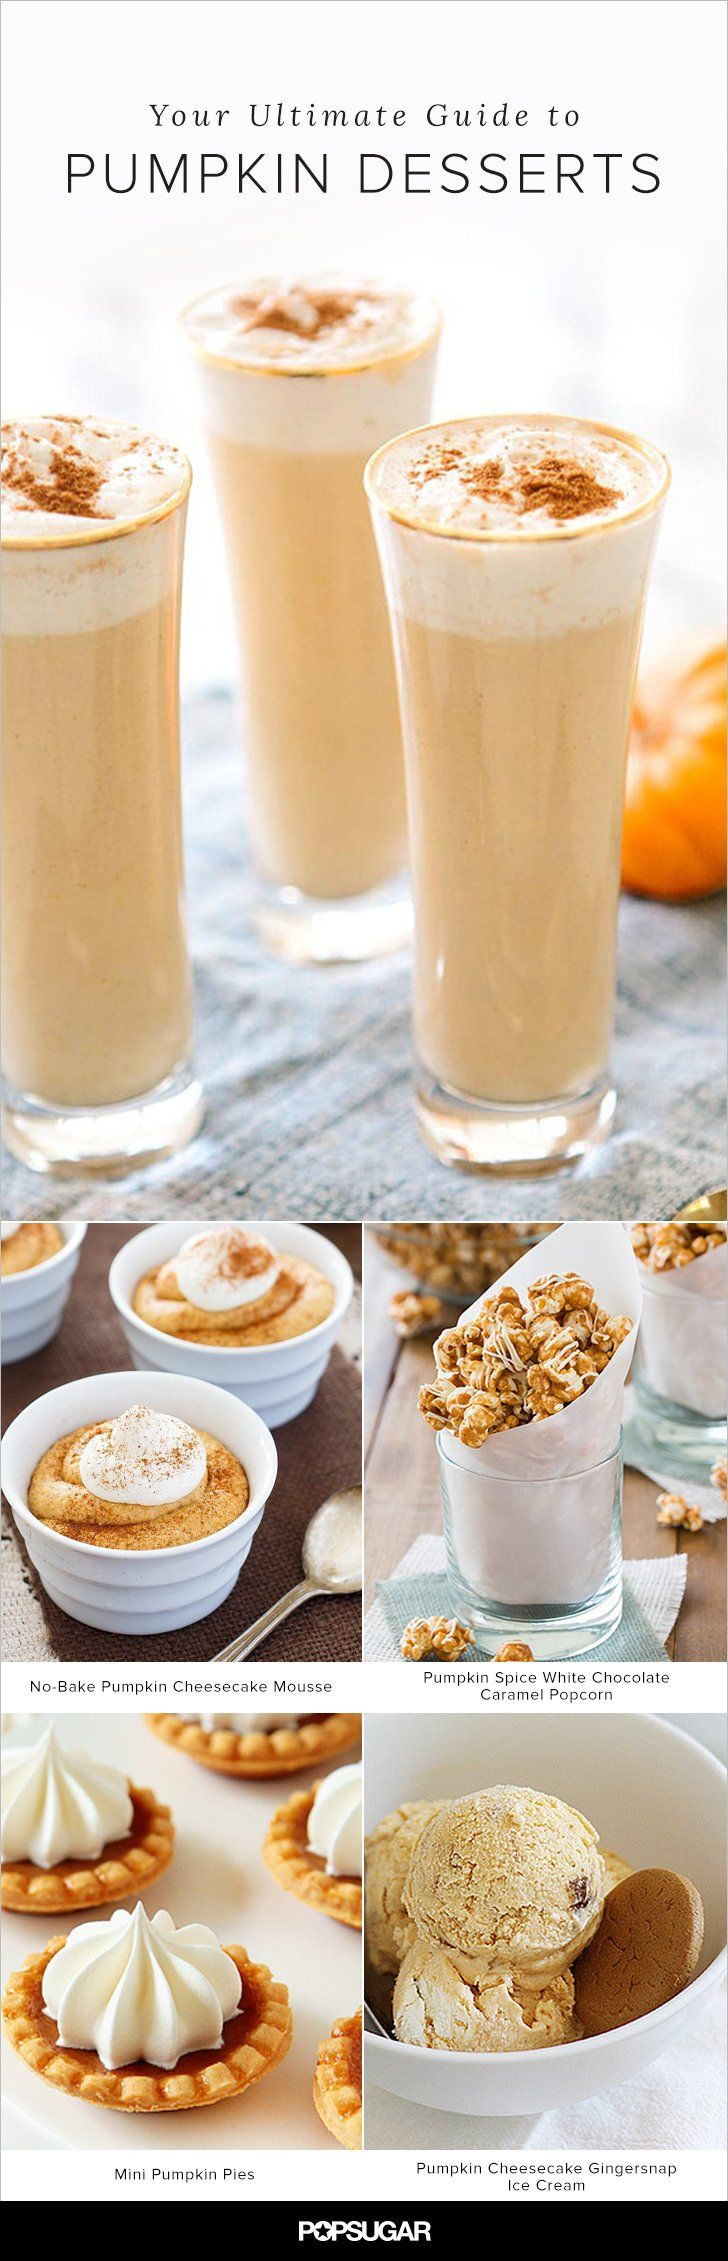 It's never too late to hop on the pumpkin bandwagon this Fall! Here are all the amazing pumpkin dessert recipes you need to make before Halloween!